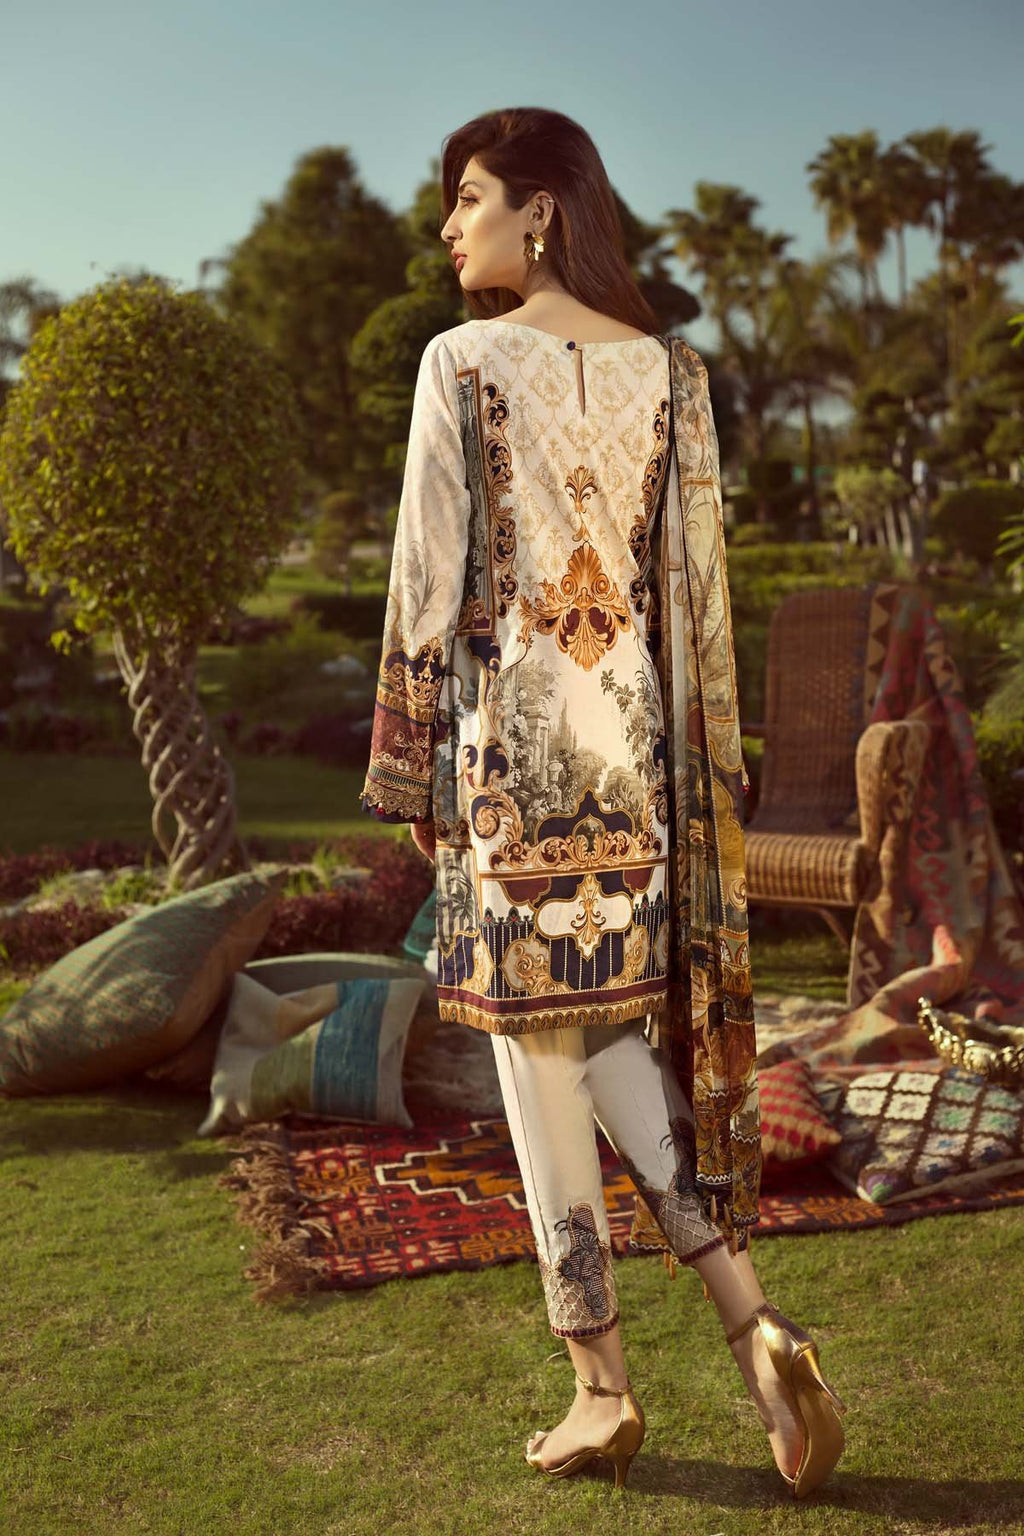 Jazmin Persuit Of Wanderlust suit Tribal Glory - Embroidered peach lawn kameez, dyed trouser with patches and chiffon dupatta